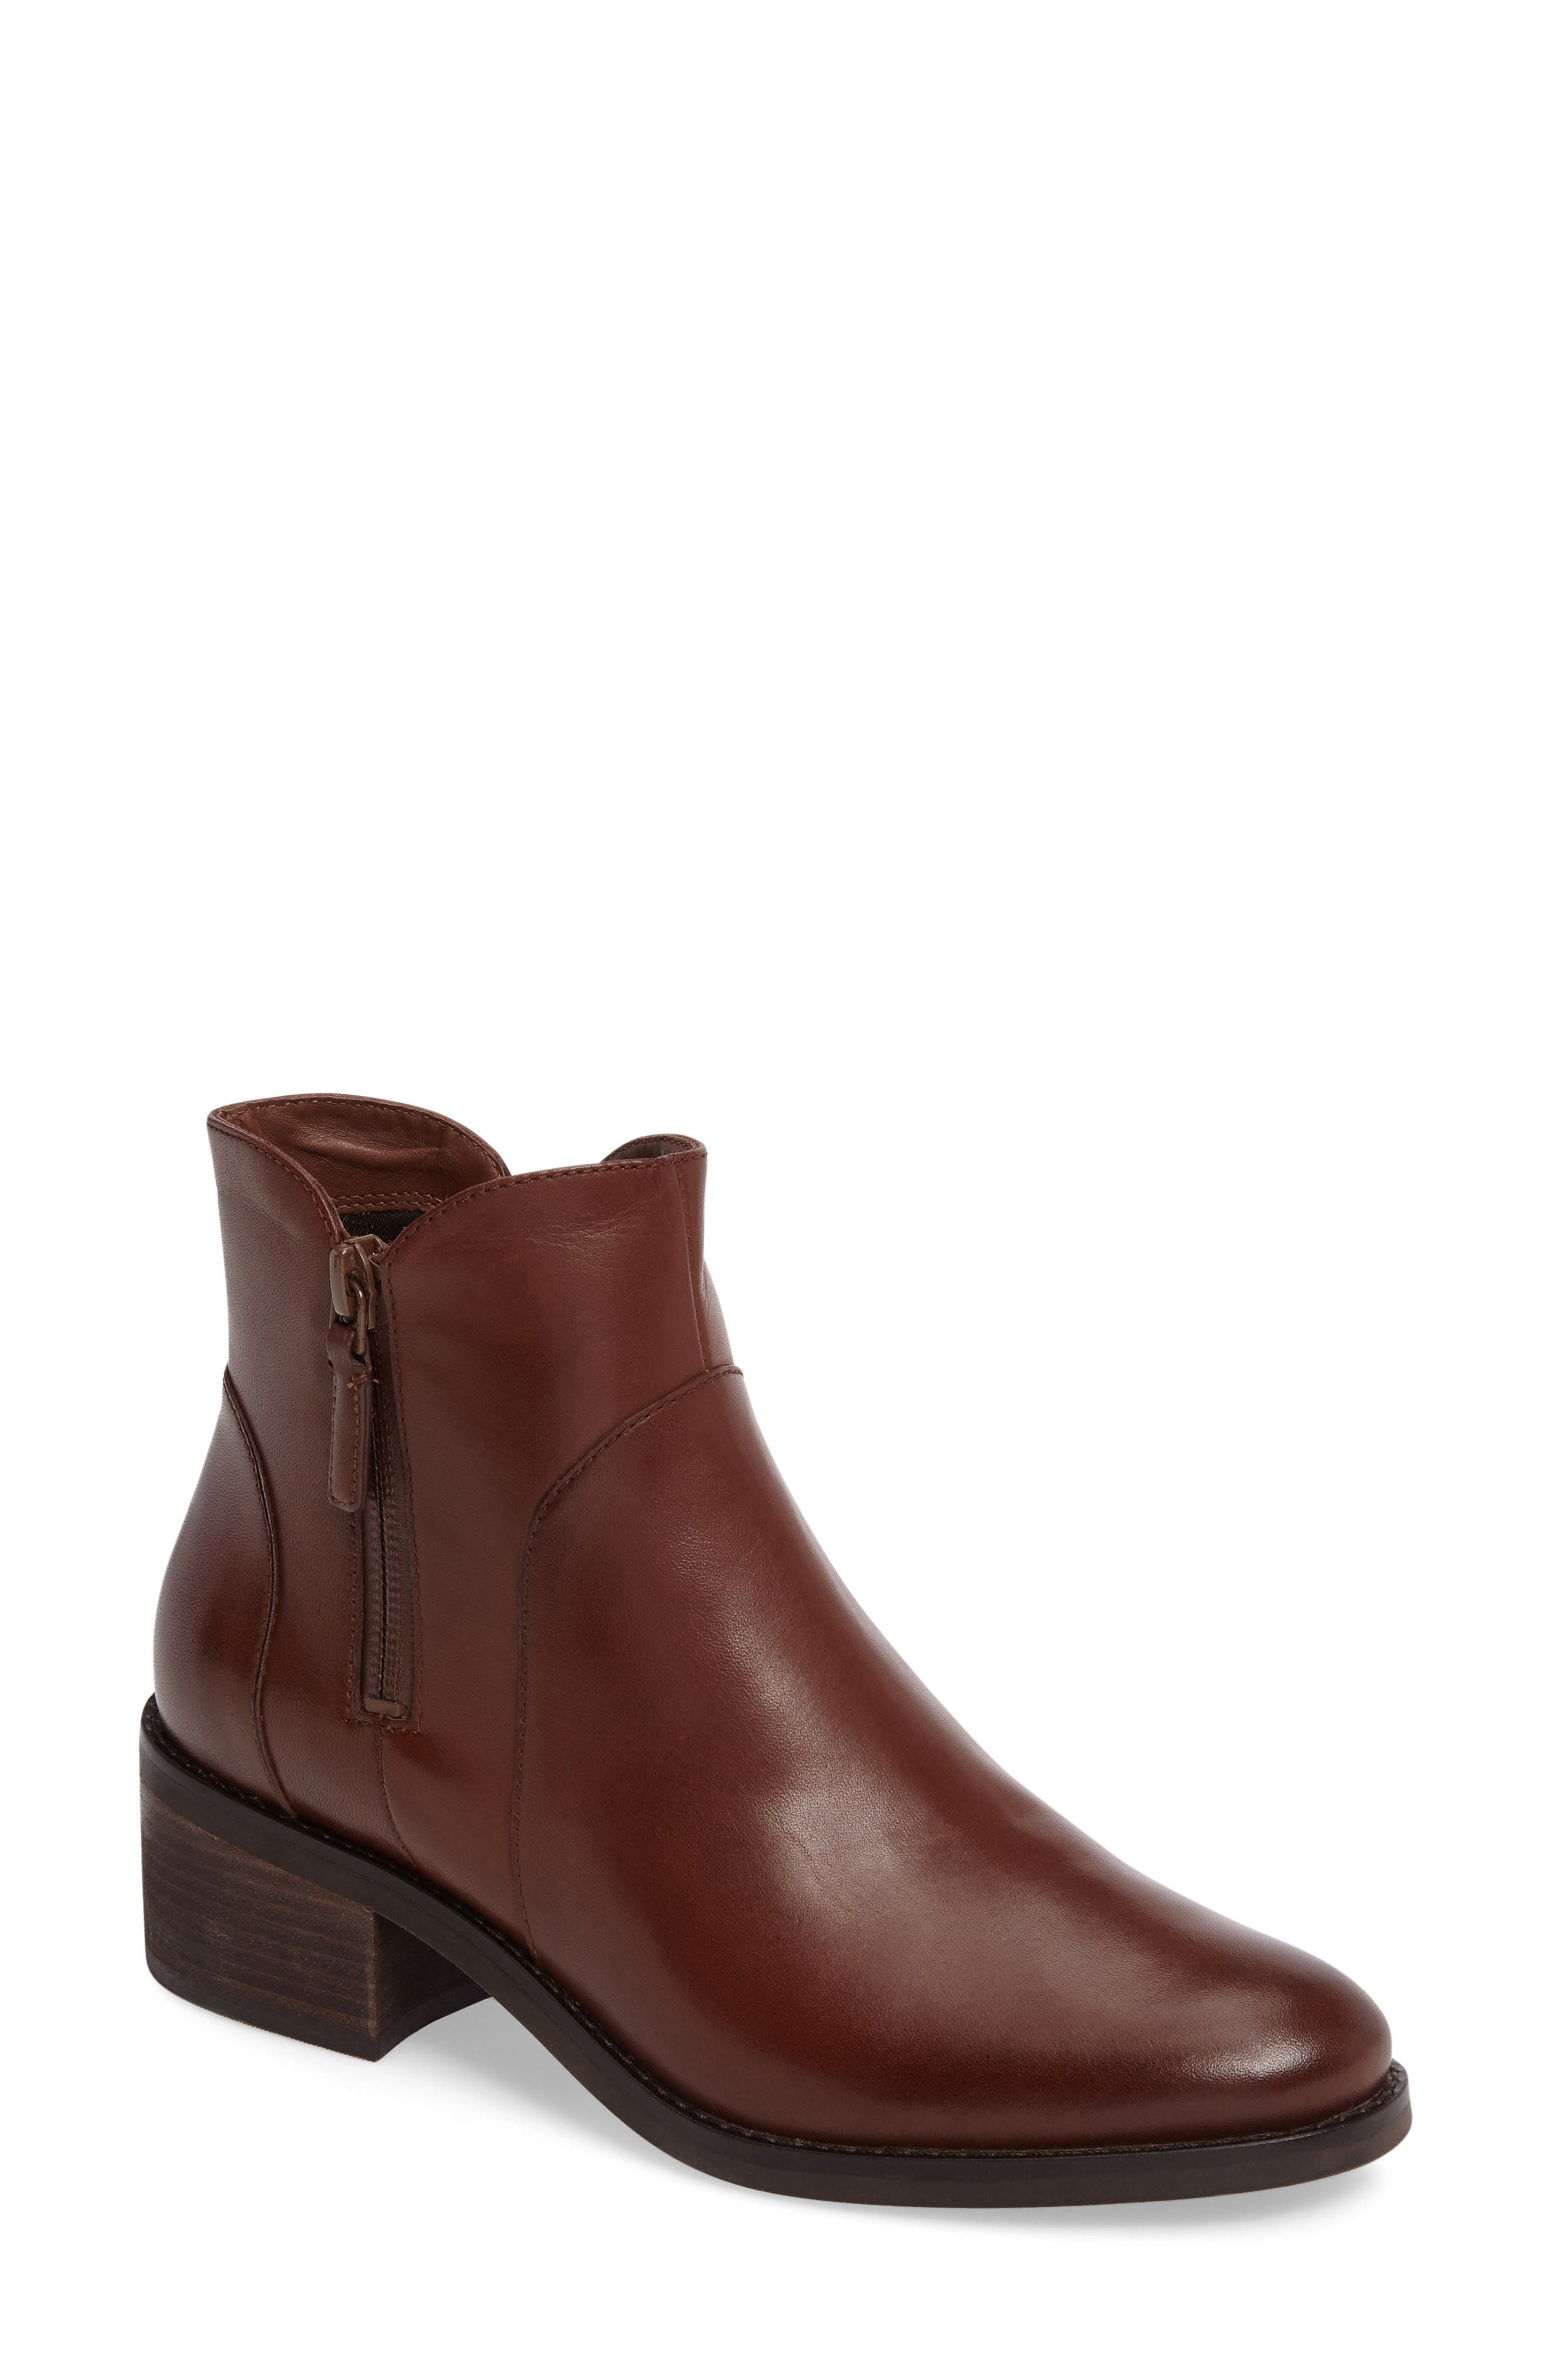 Main Image - Cole Haan Lyla Waterproof Bootie (Women)